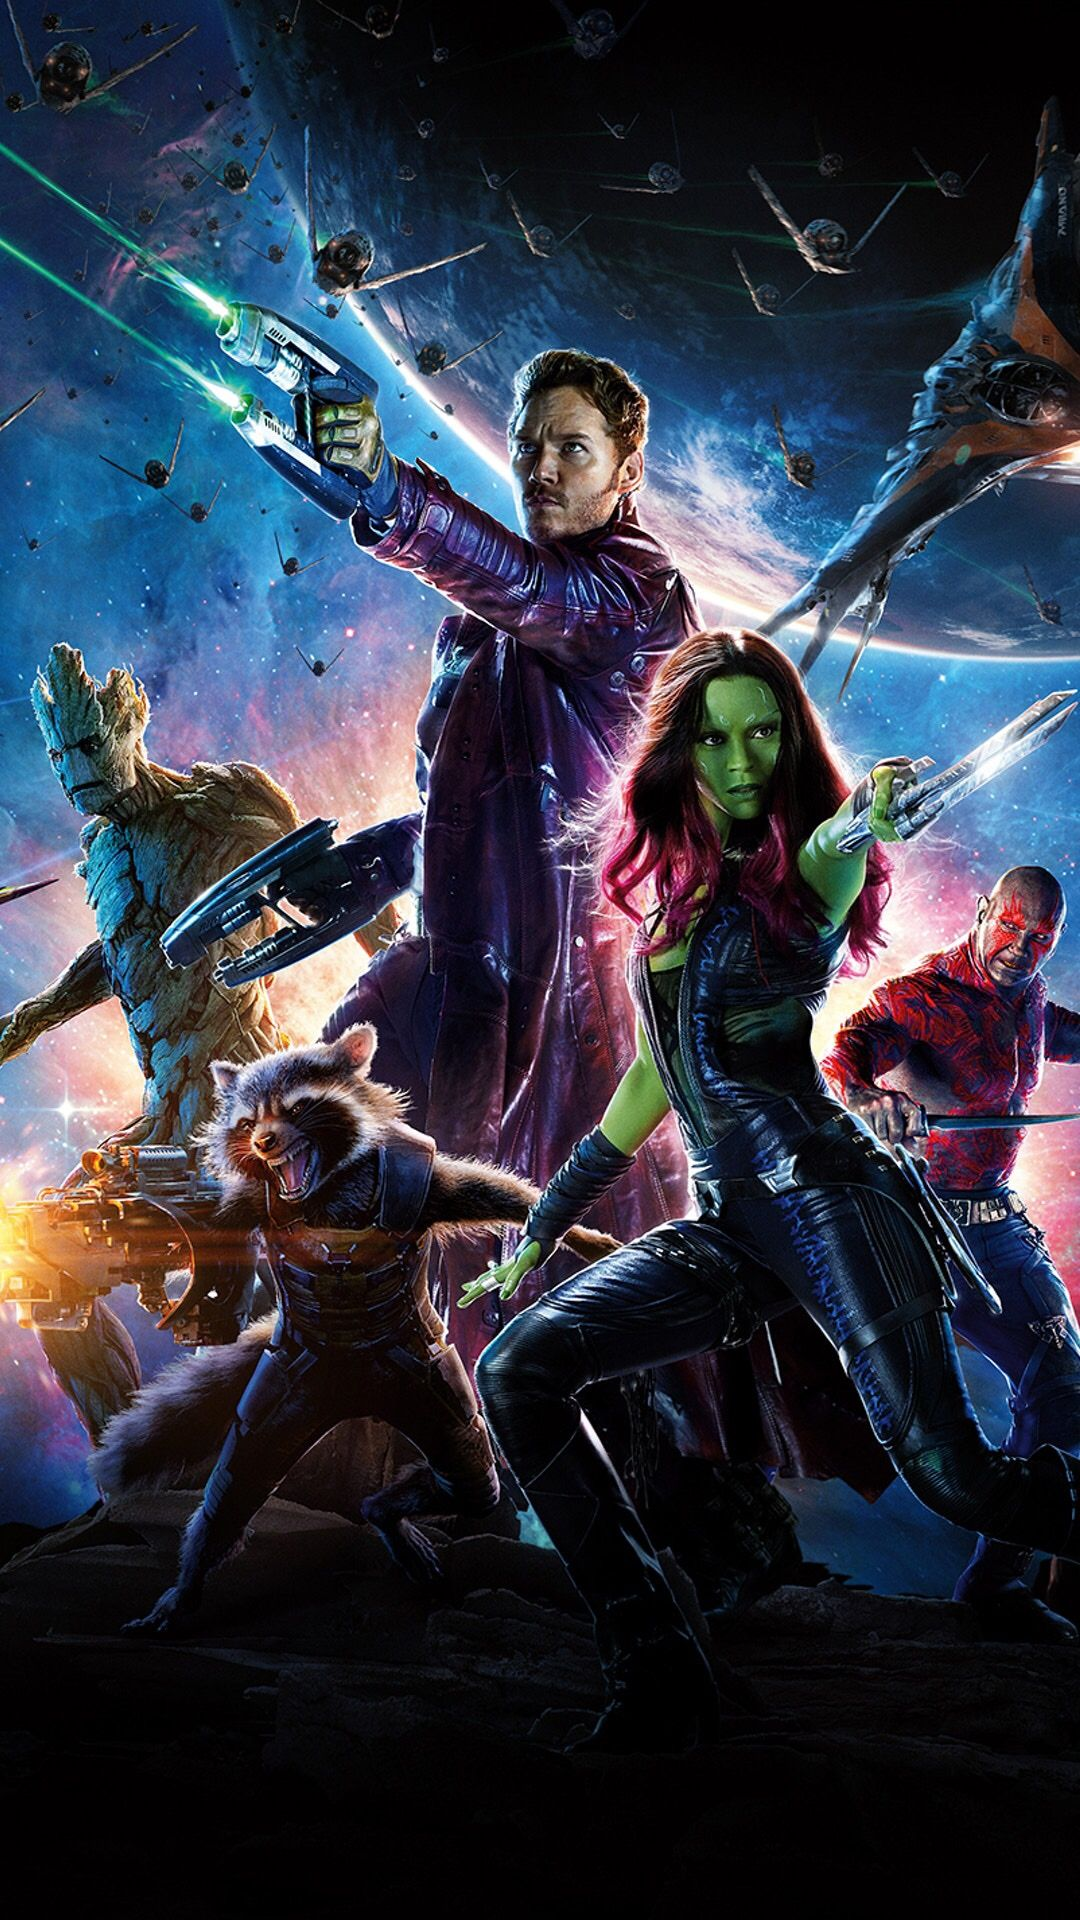 Earlier Marvel also revealed the official poster for James Gunn s Guardians of the Galaxy and it had this The Avengers meets Star Wars vibe which is what